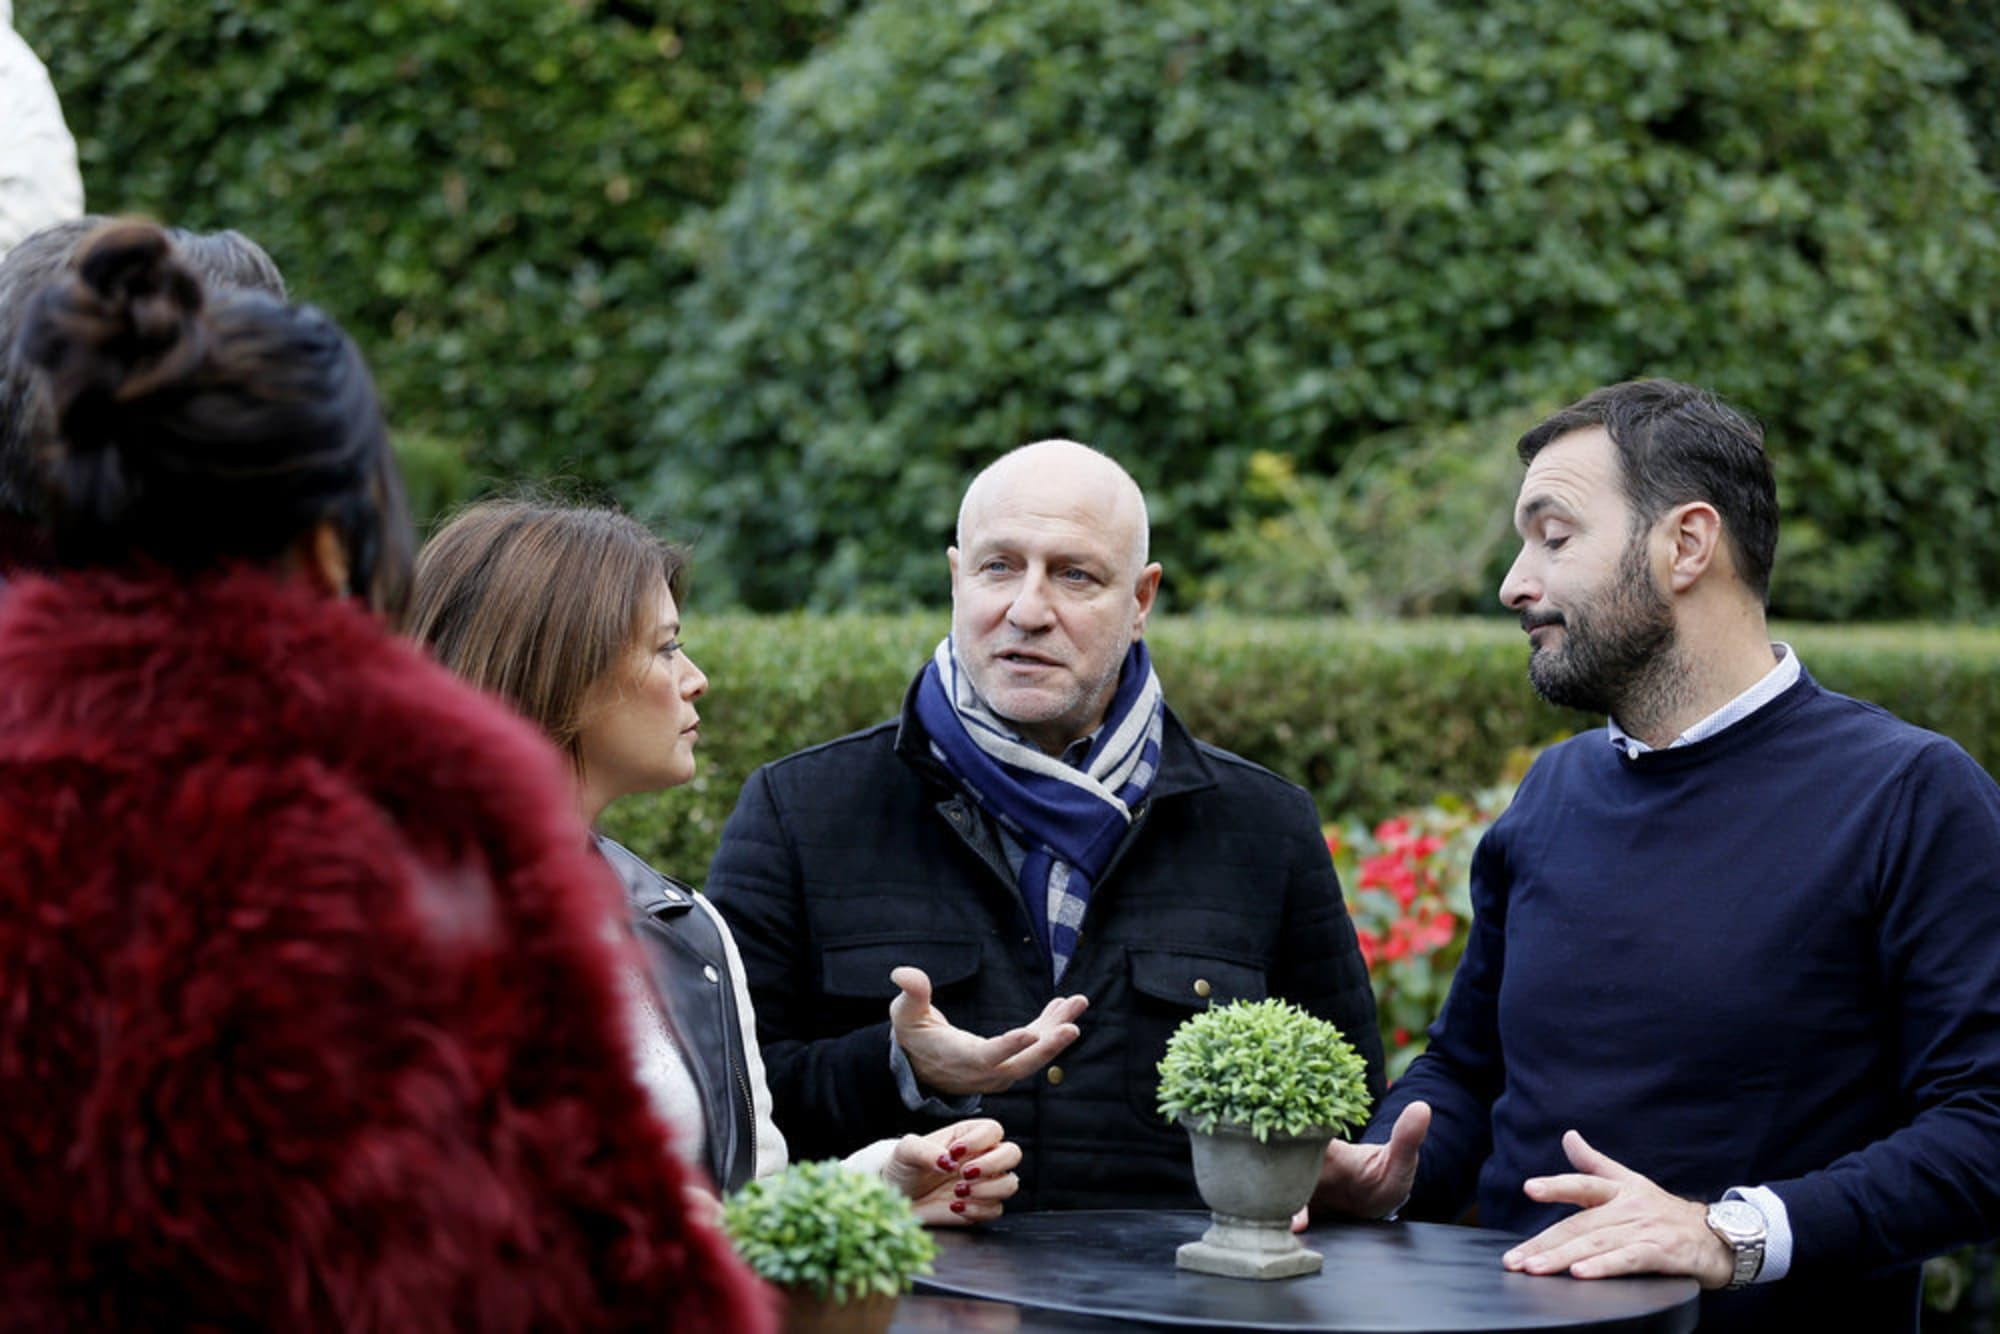 Tom Colicchio shares a heartfelt message about filming Top Chef in Italy, exclusive clip